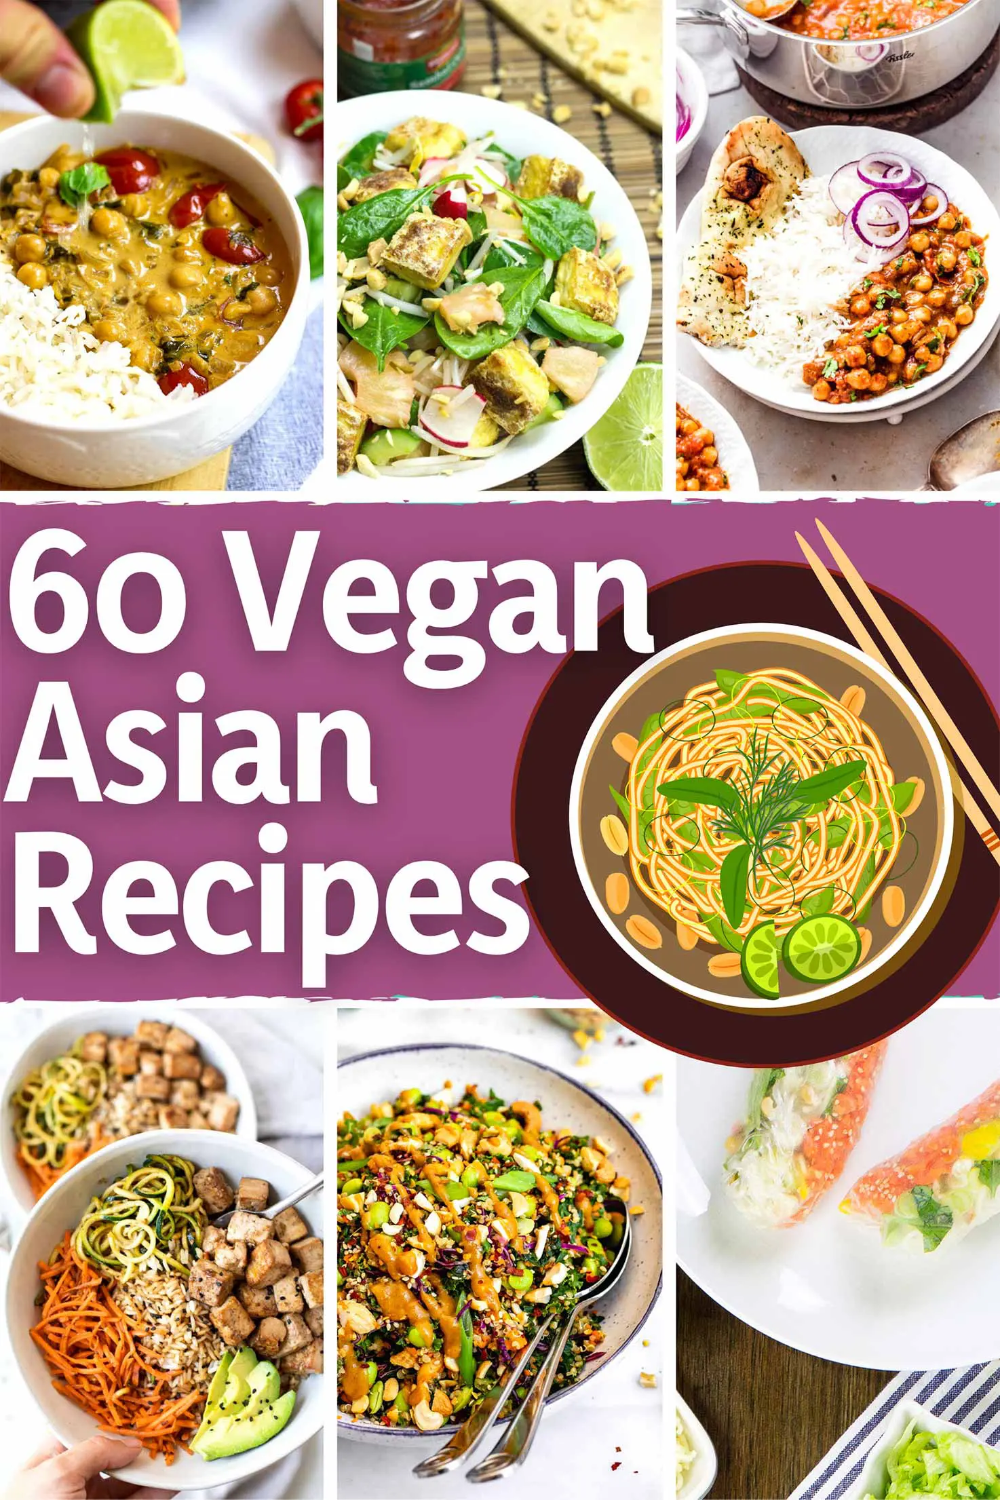 60 Vegan Asian Recipes Find Your New Favorite Recipe In 2021 Vegan Asian Recipes Asian Recipes Asian Vegetarian Recipes